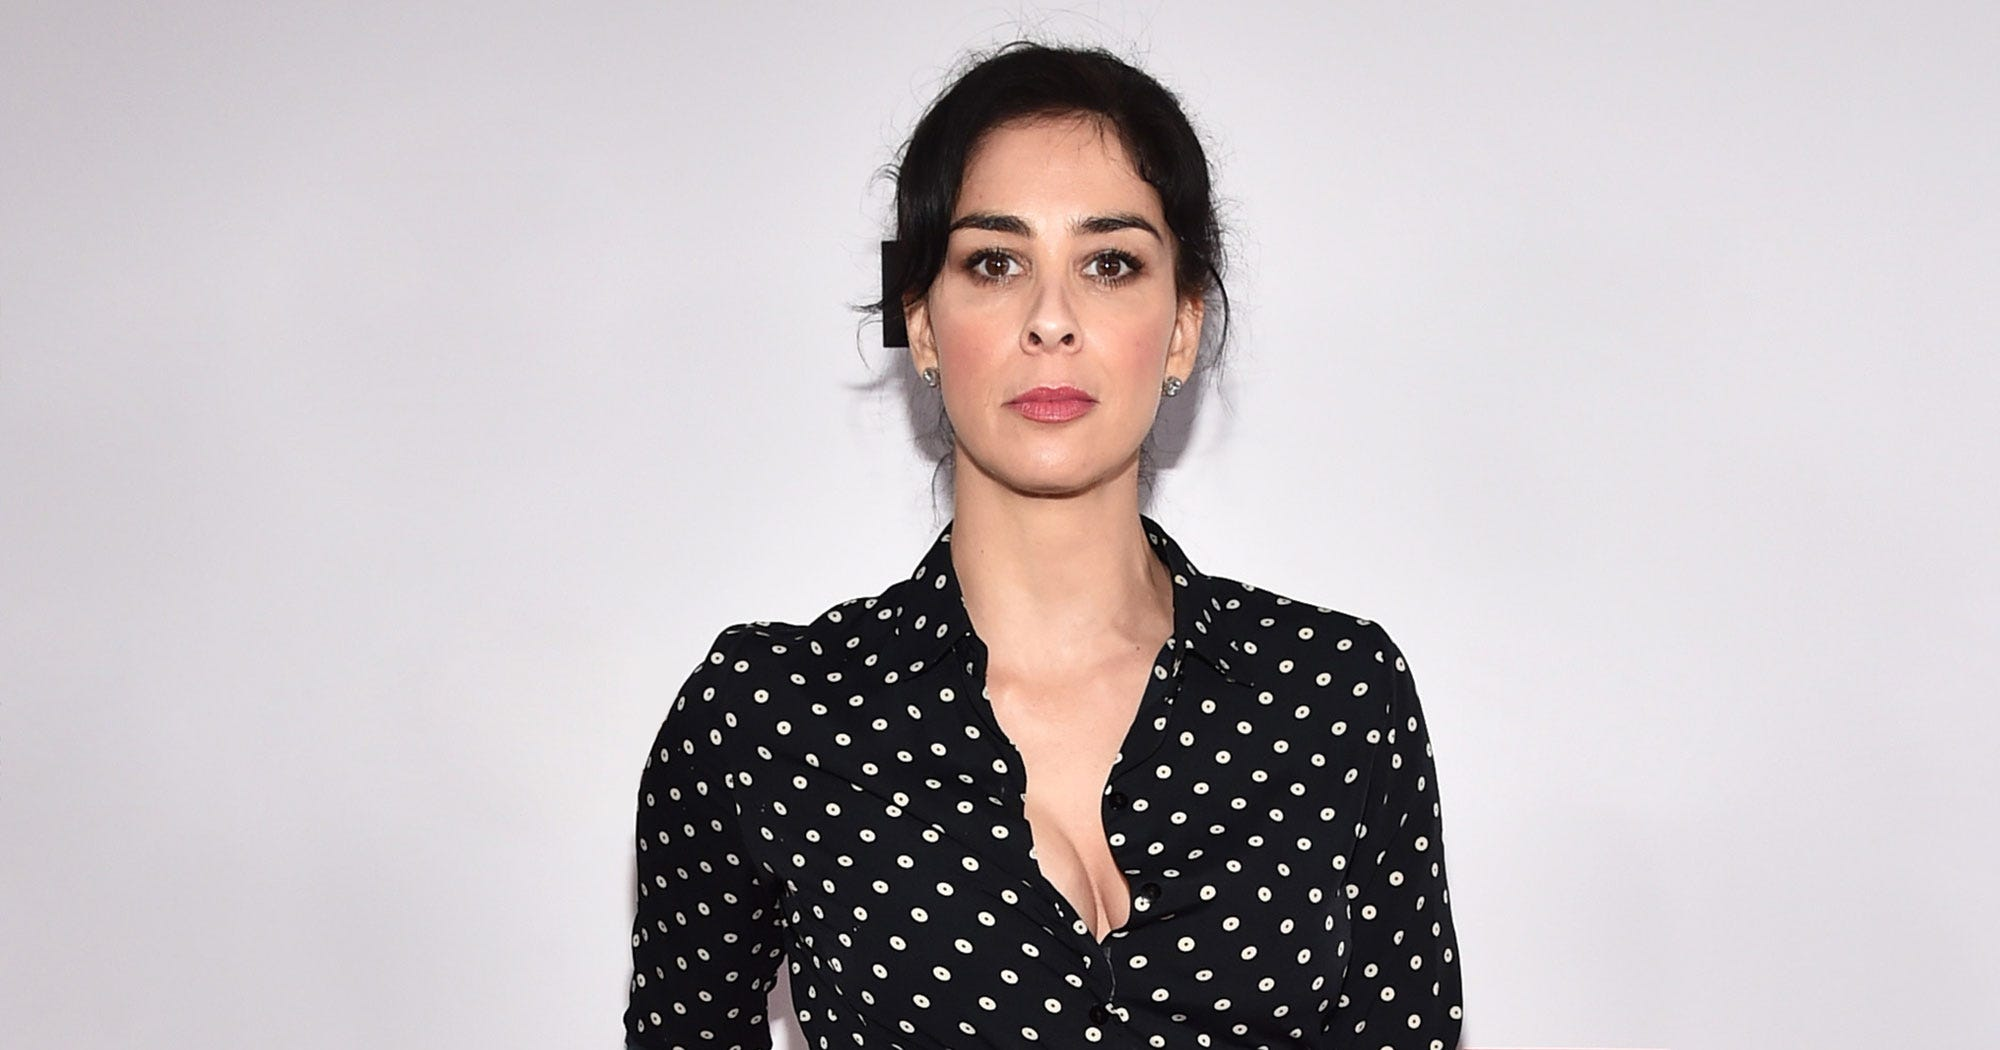 Sarah Silverman Says She Was Fired From A Movie Over Resurfaced Blackface Sketch